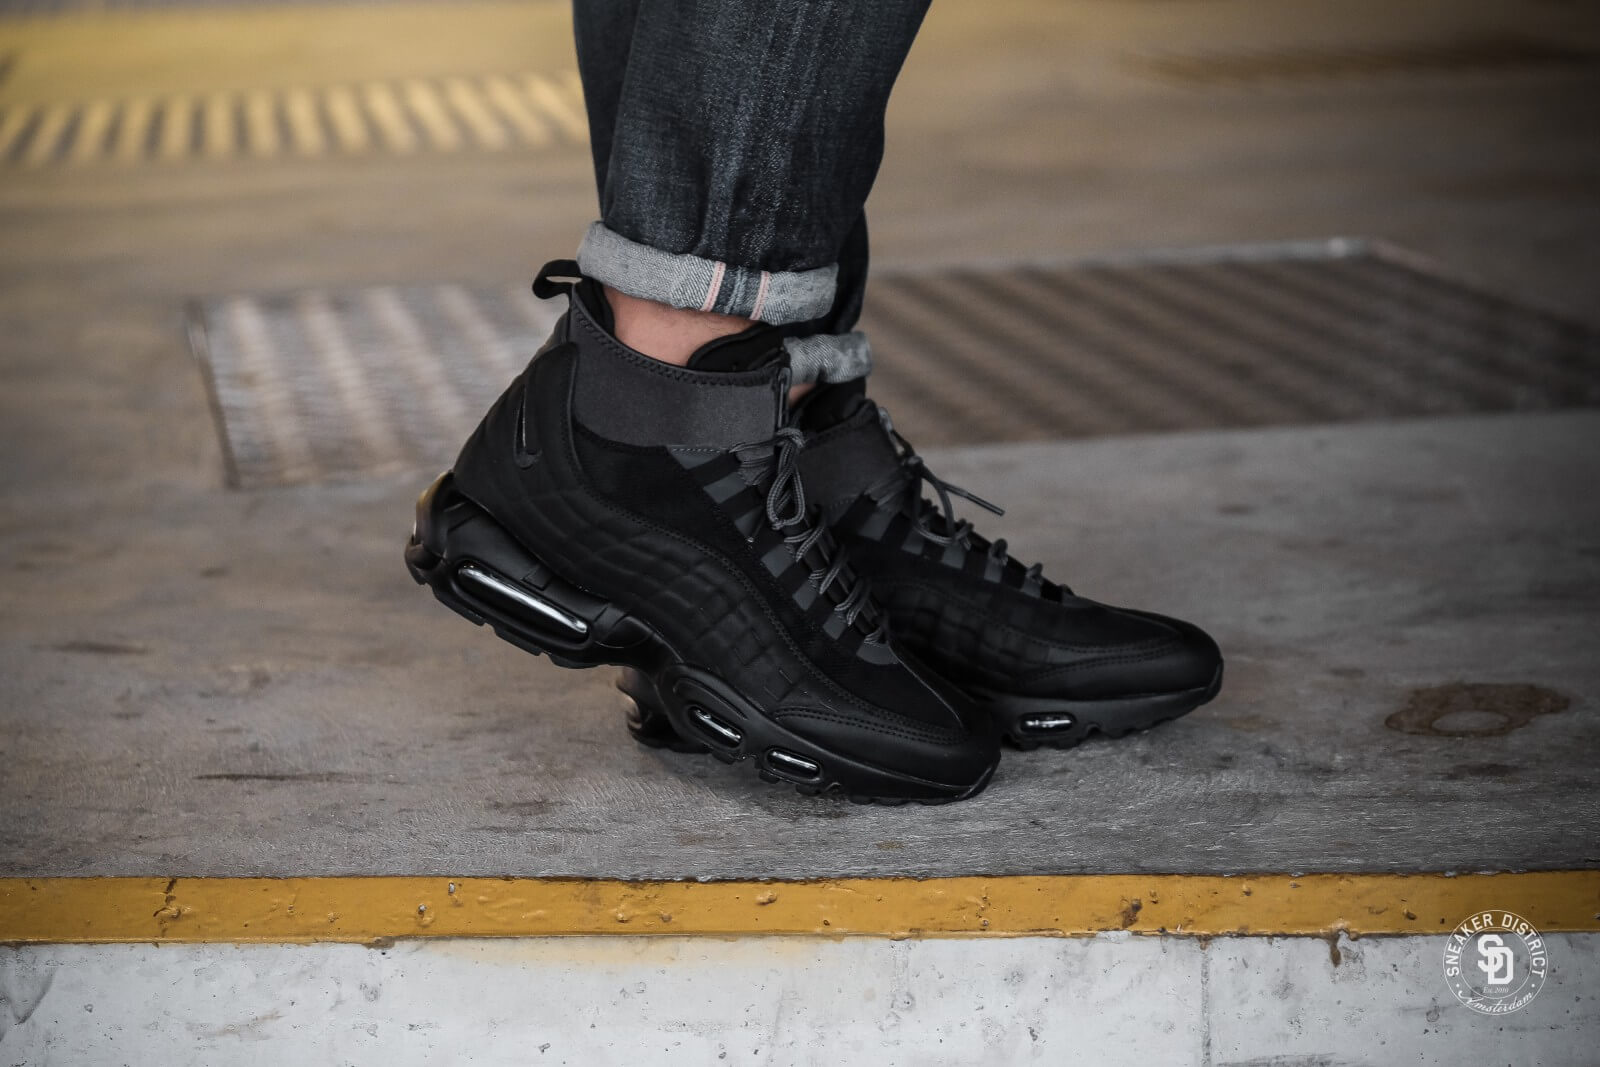 80717cc3cd ... wholesale nike air max 95 sneakerboot black anthracite white 46ee6  2890b ...